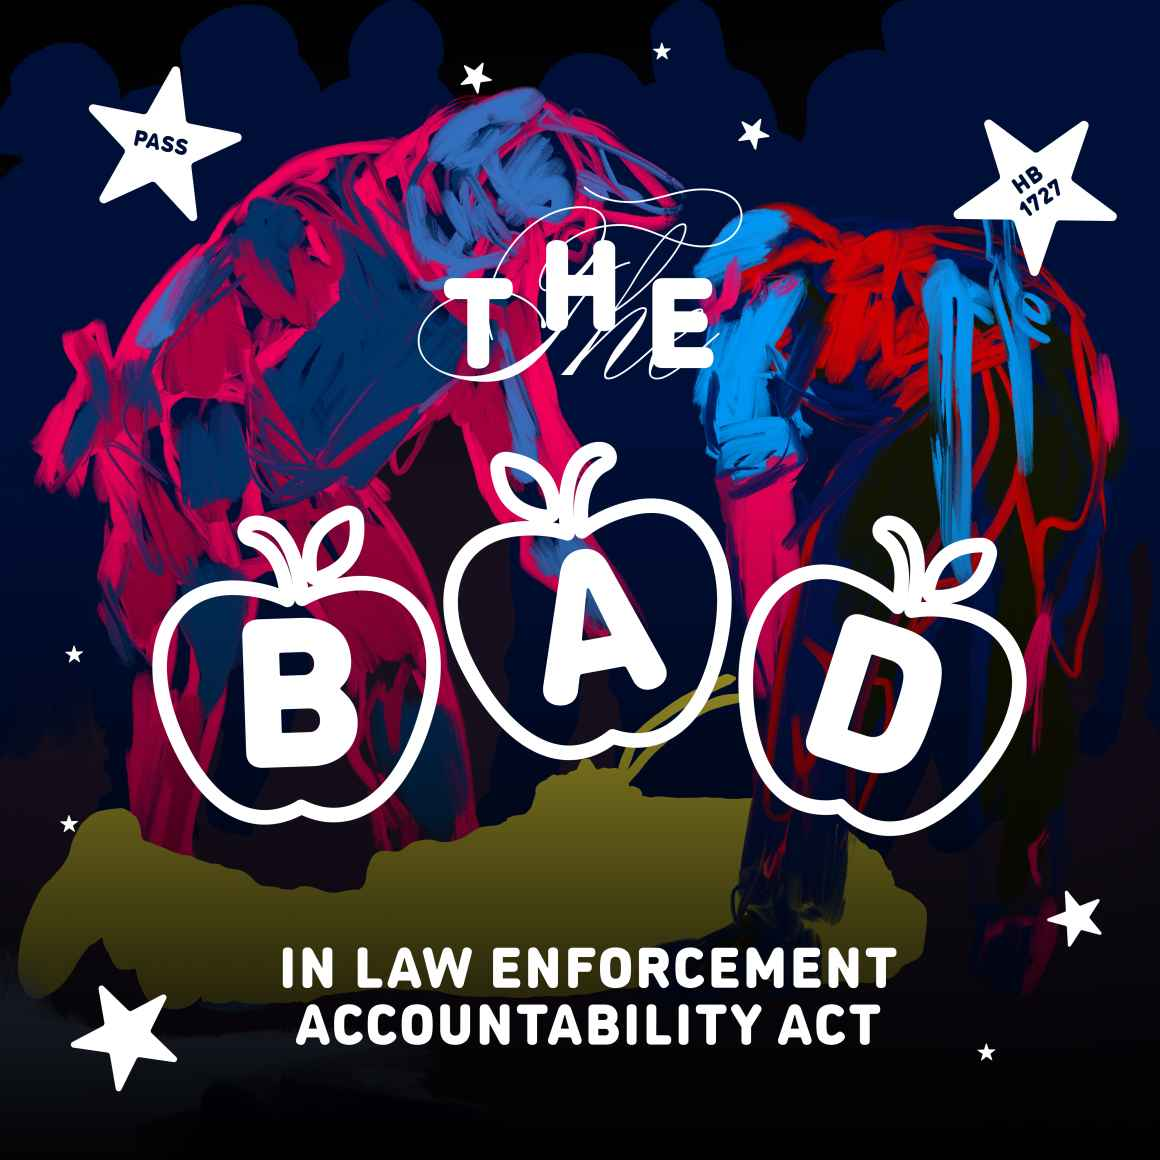 The Bad Apples in Law Enforcement Accountability Act